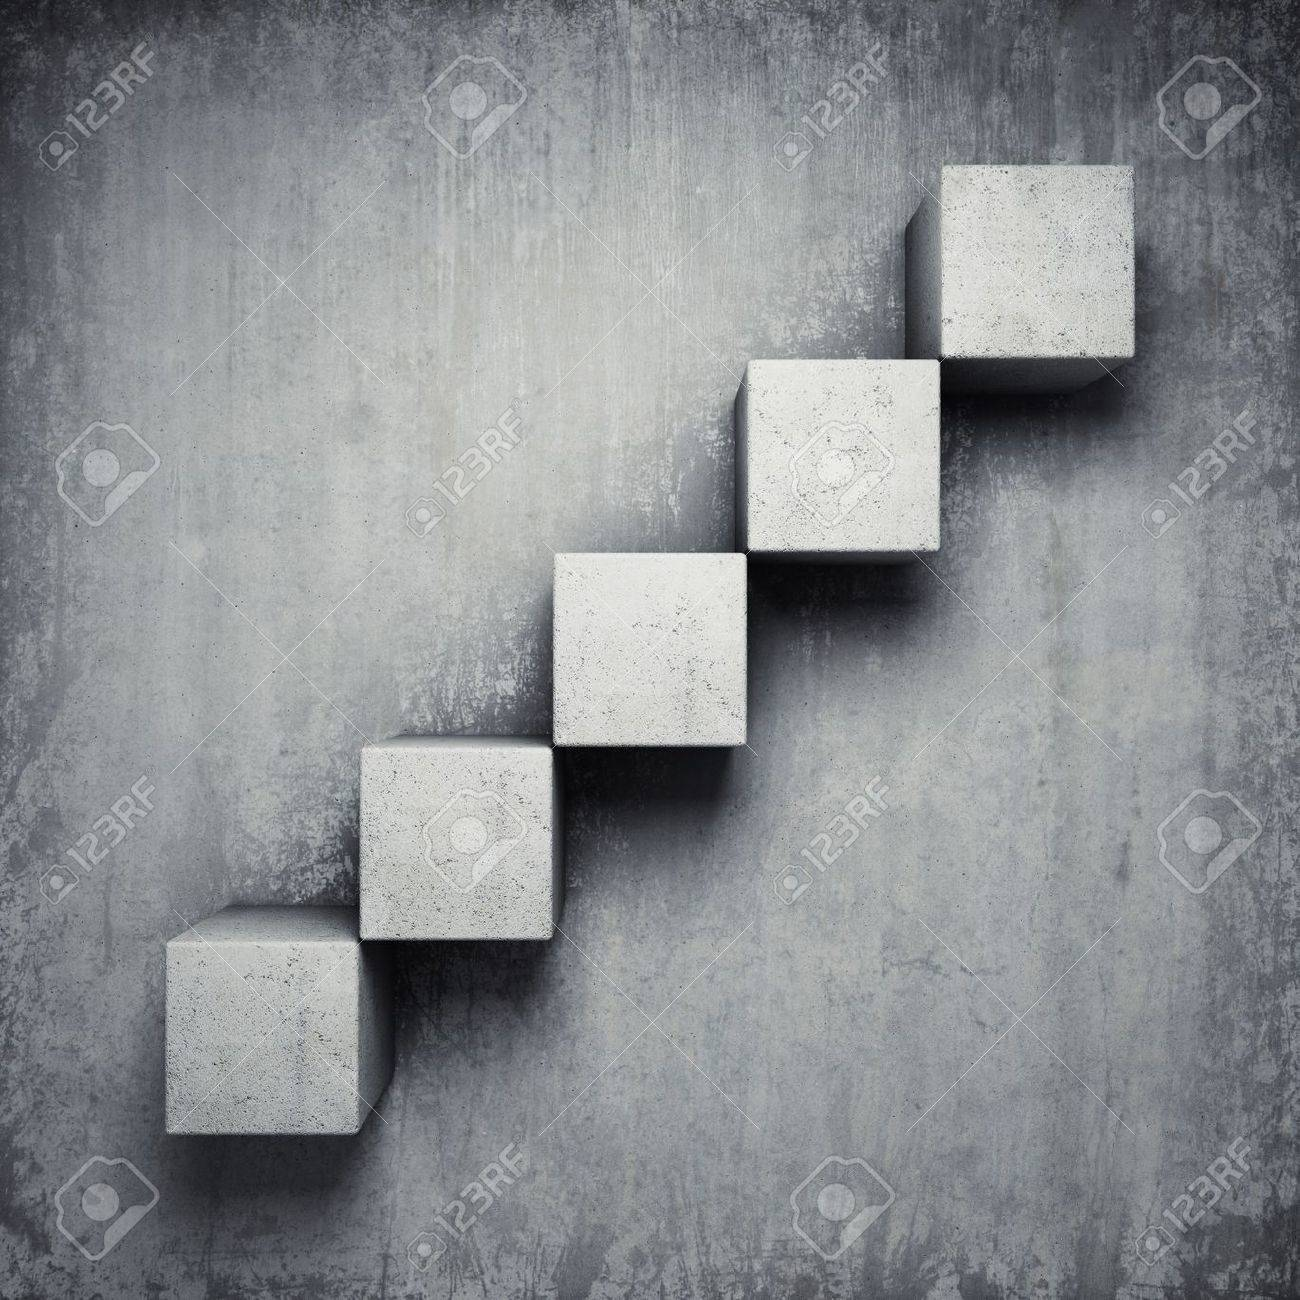 Abstract concrete staircase made of cubes Stock Photo - 19867133